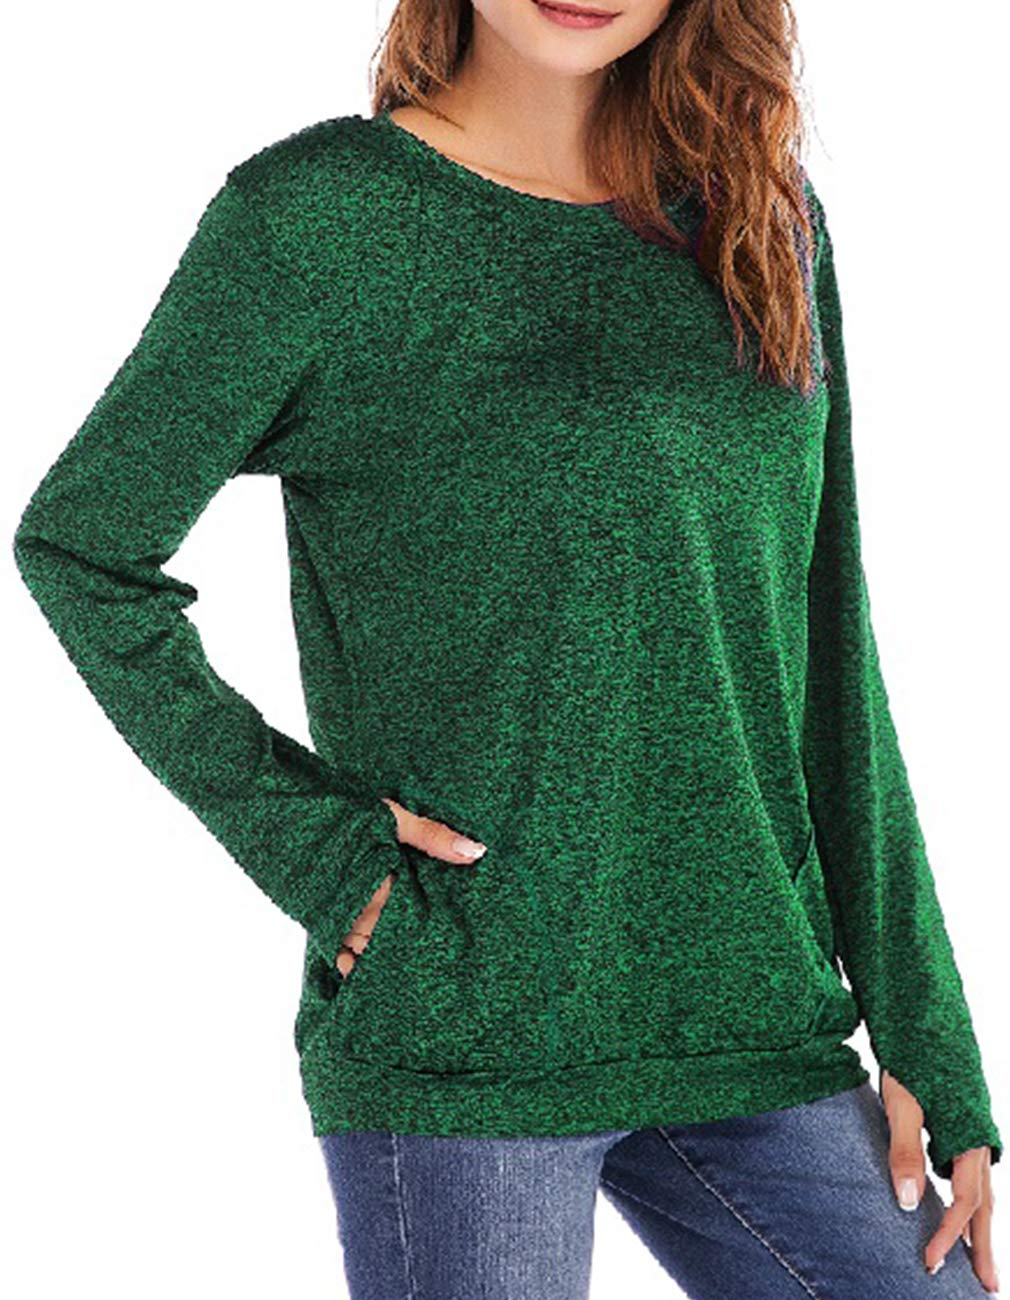 Defal Womens Long Sleeve Round Neck Quick-Dry Top T-Shirts Loose Gym Sports with Thumb Holes Pockets Fashion Tunic Blouse (Green,XXXL) by Defal (Image #1)